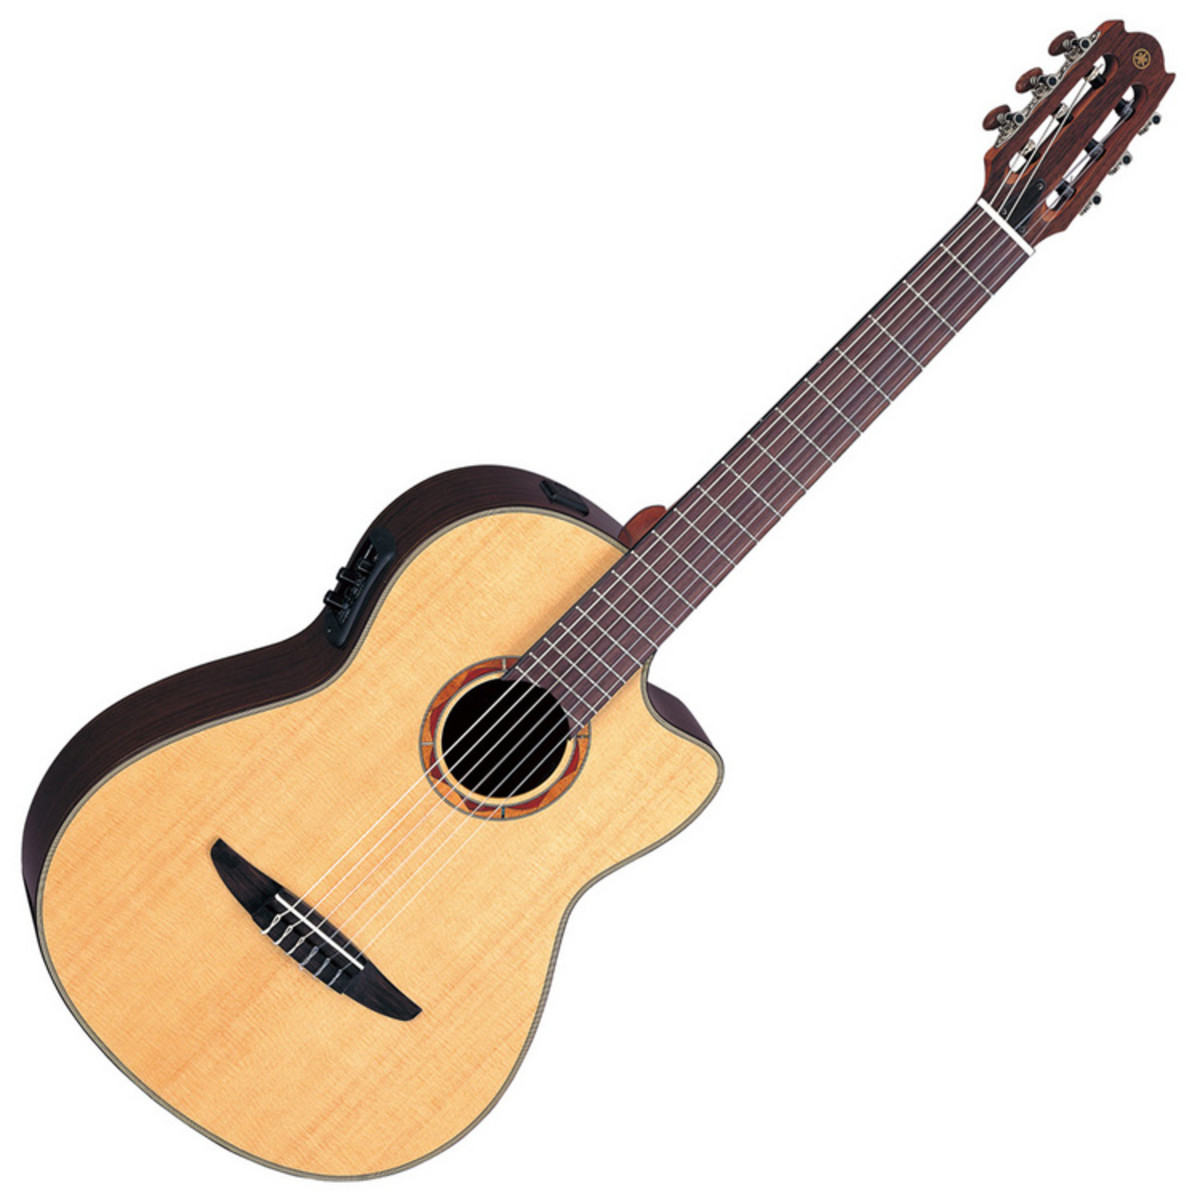 Yamaha ncx900r electro acoustic classical guitar at for Yamaha classic guitar